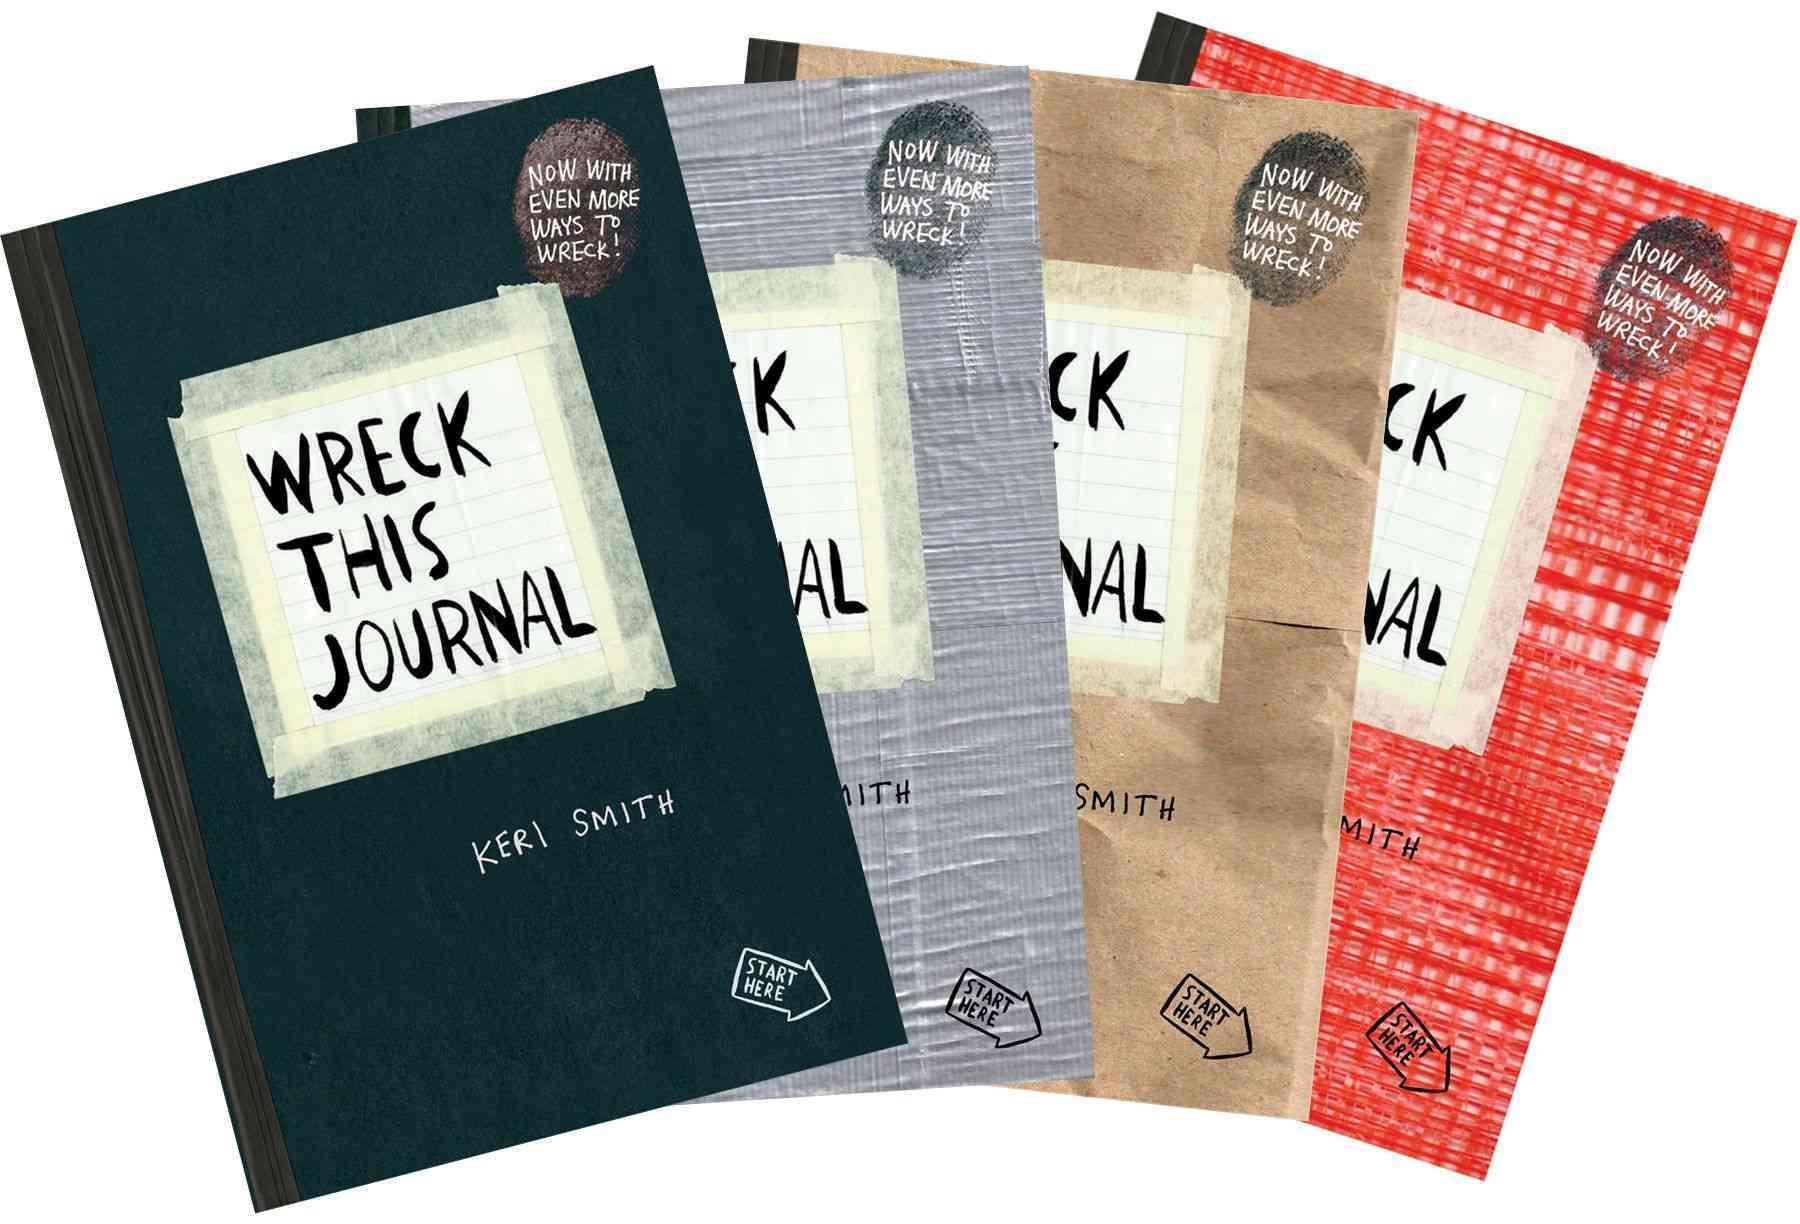 Wreck This Journal (Paperback)